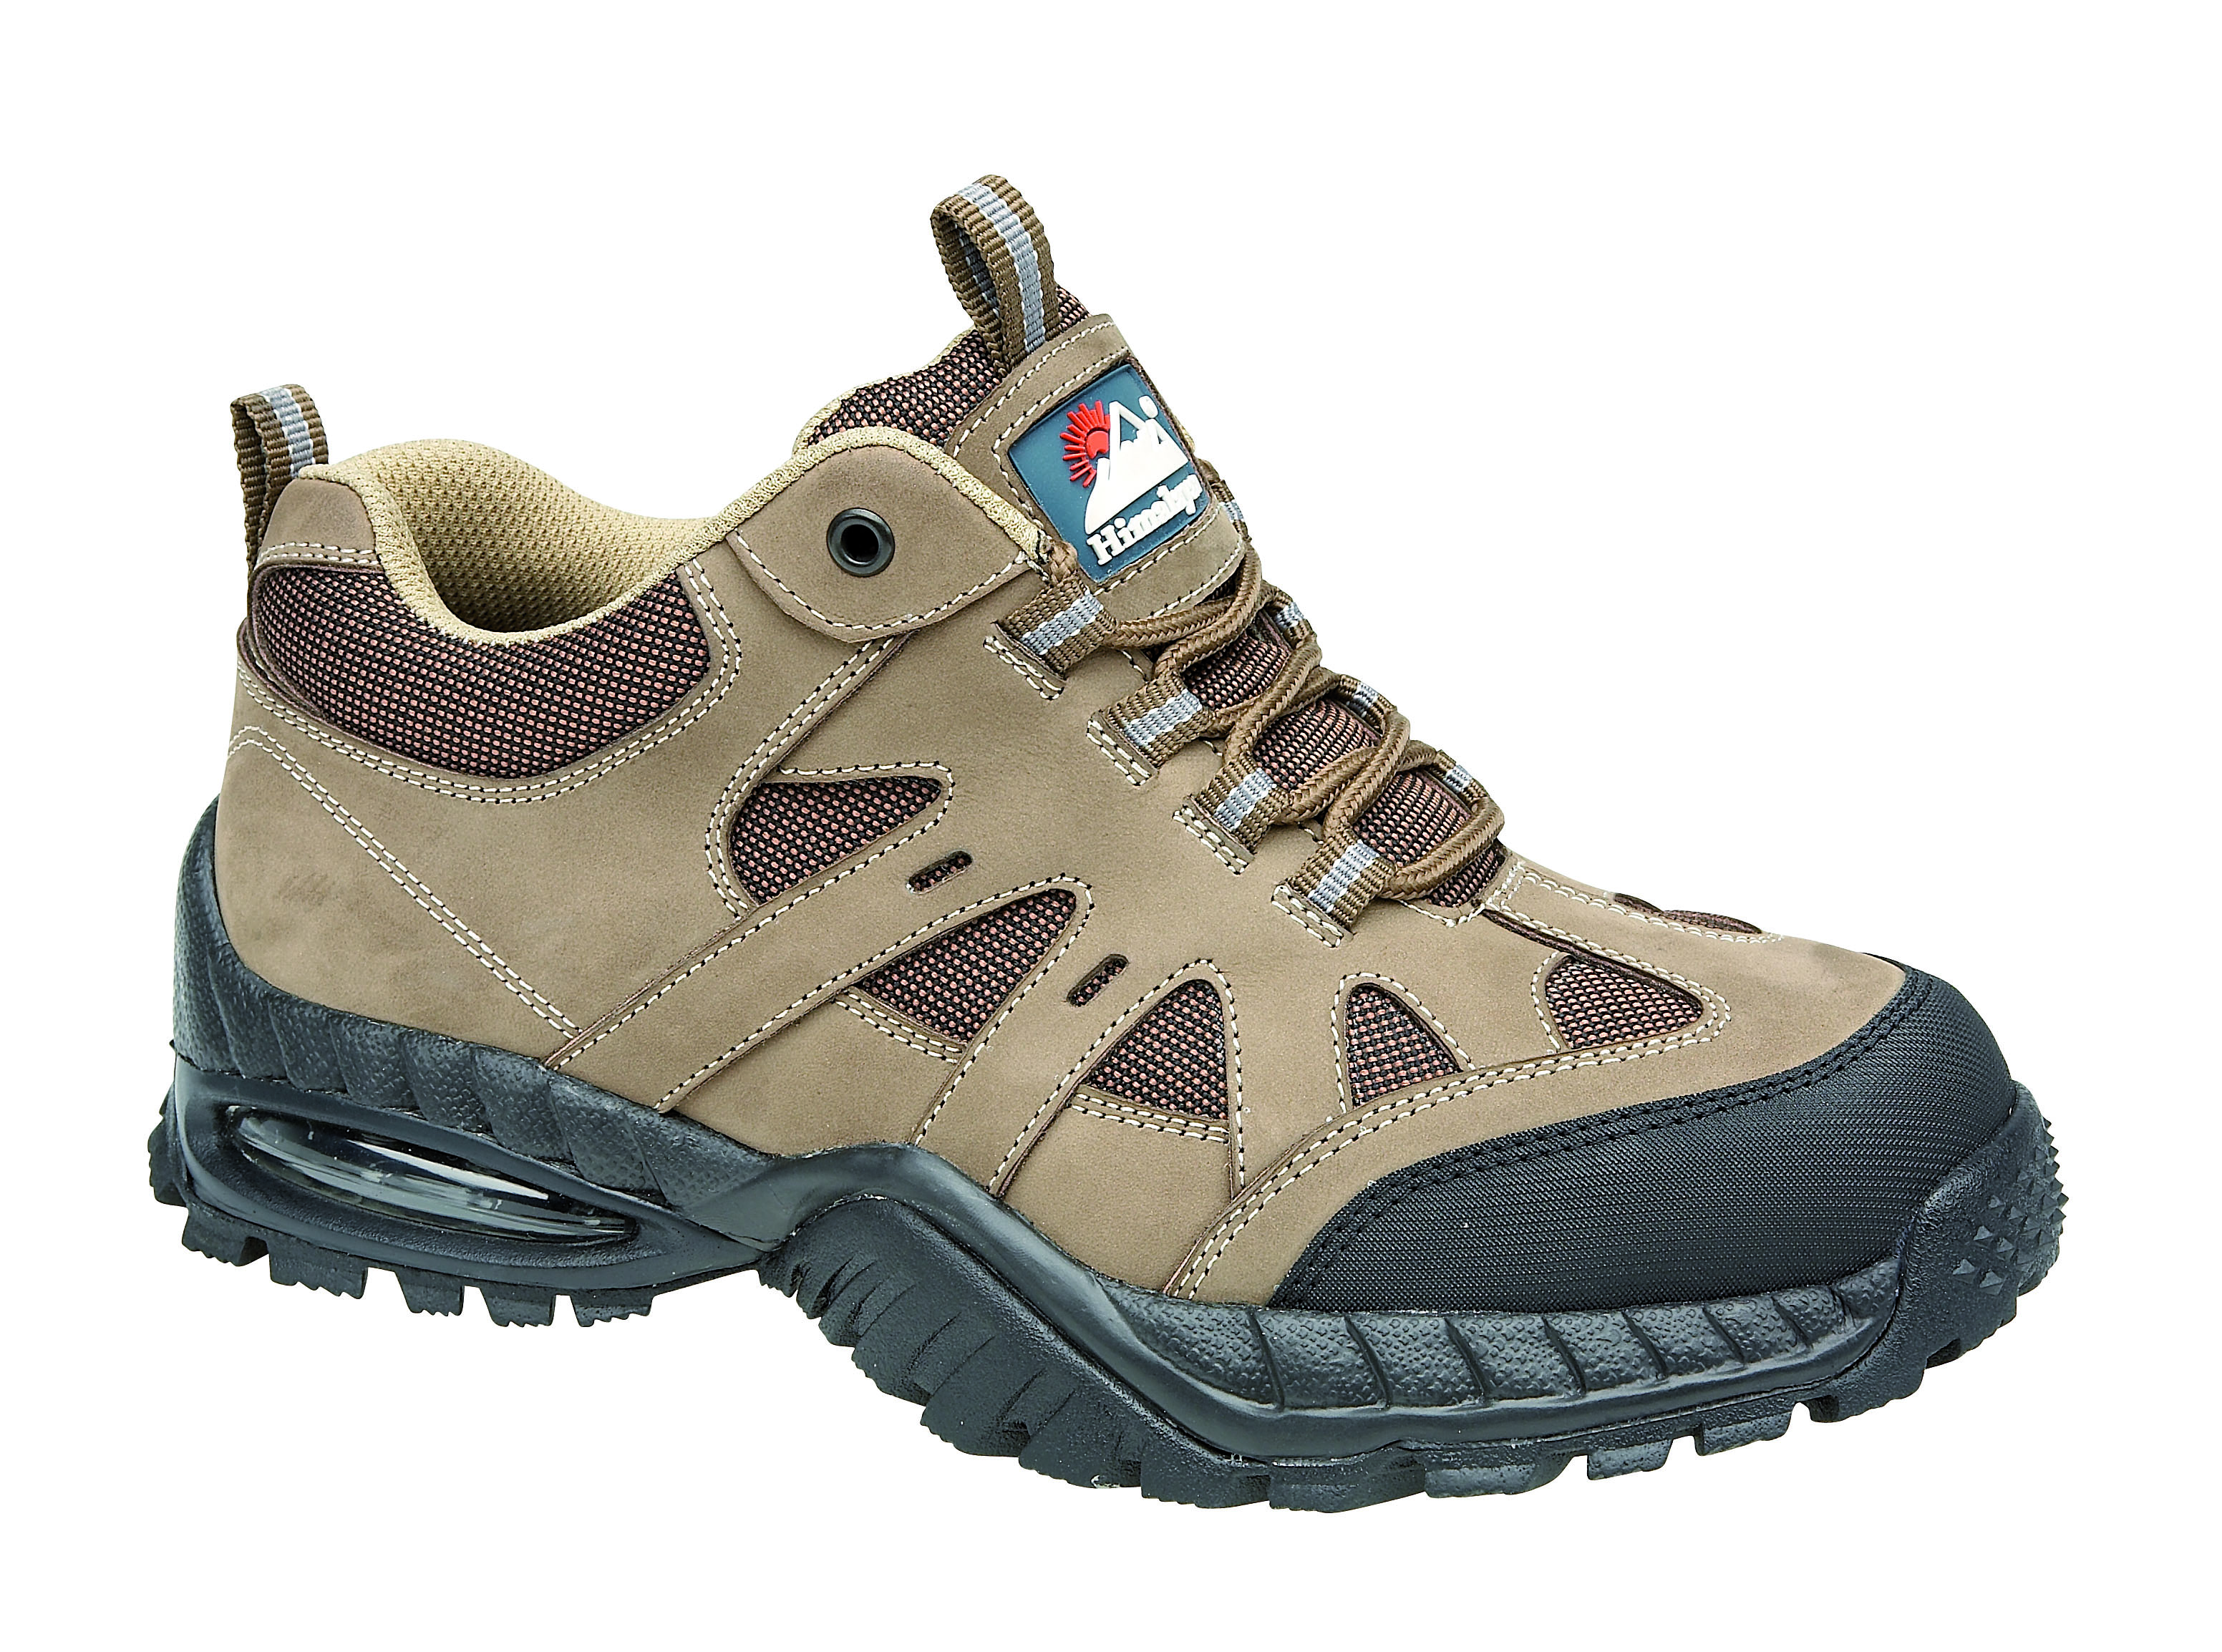 HIMALAYAN 4042 SBP wheat nubuck air-bubble safety trainer with midsole size 3-13